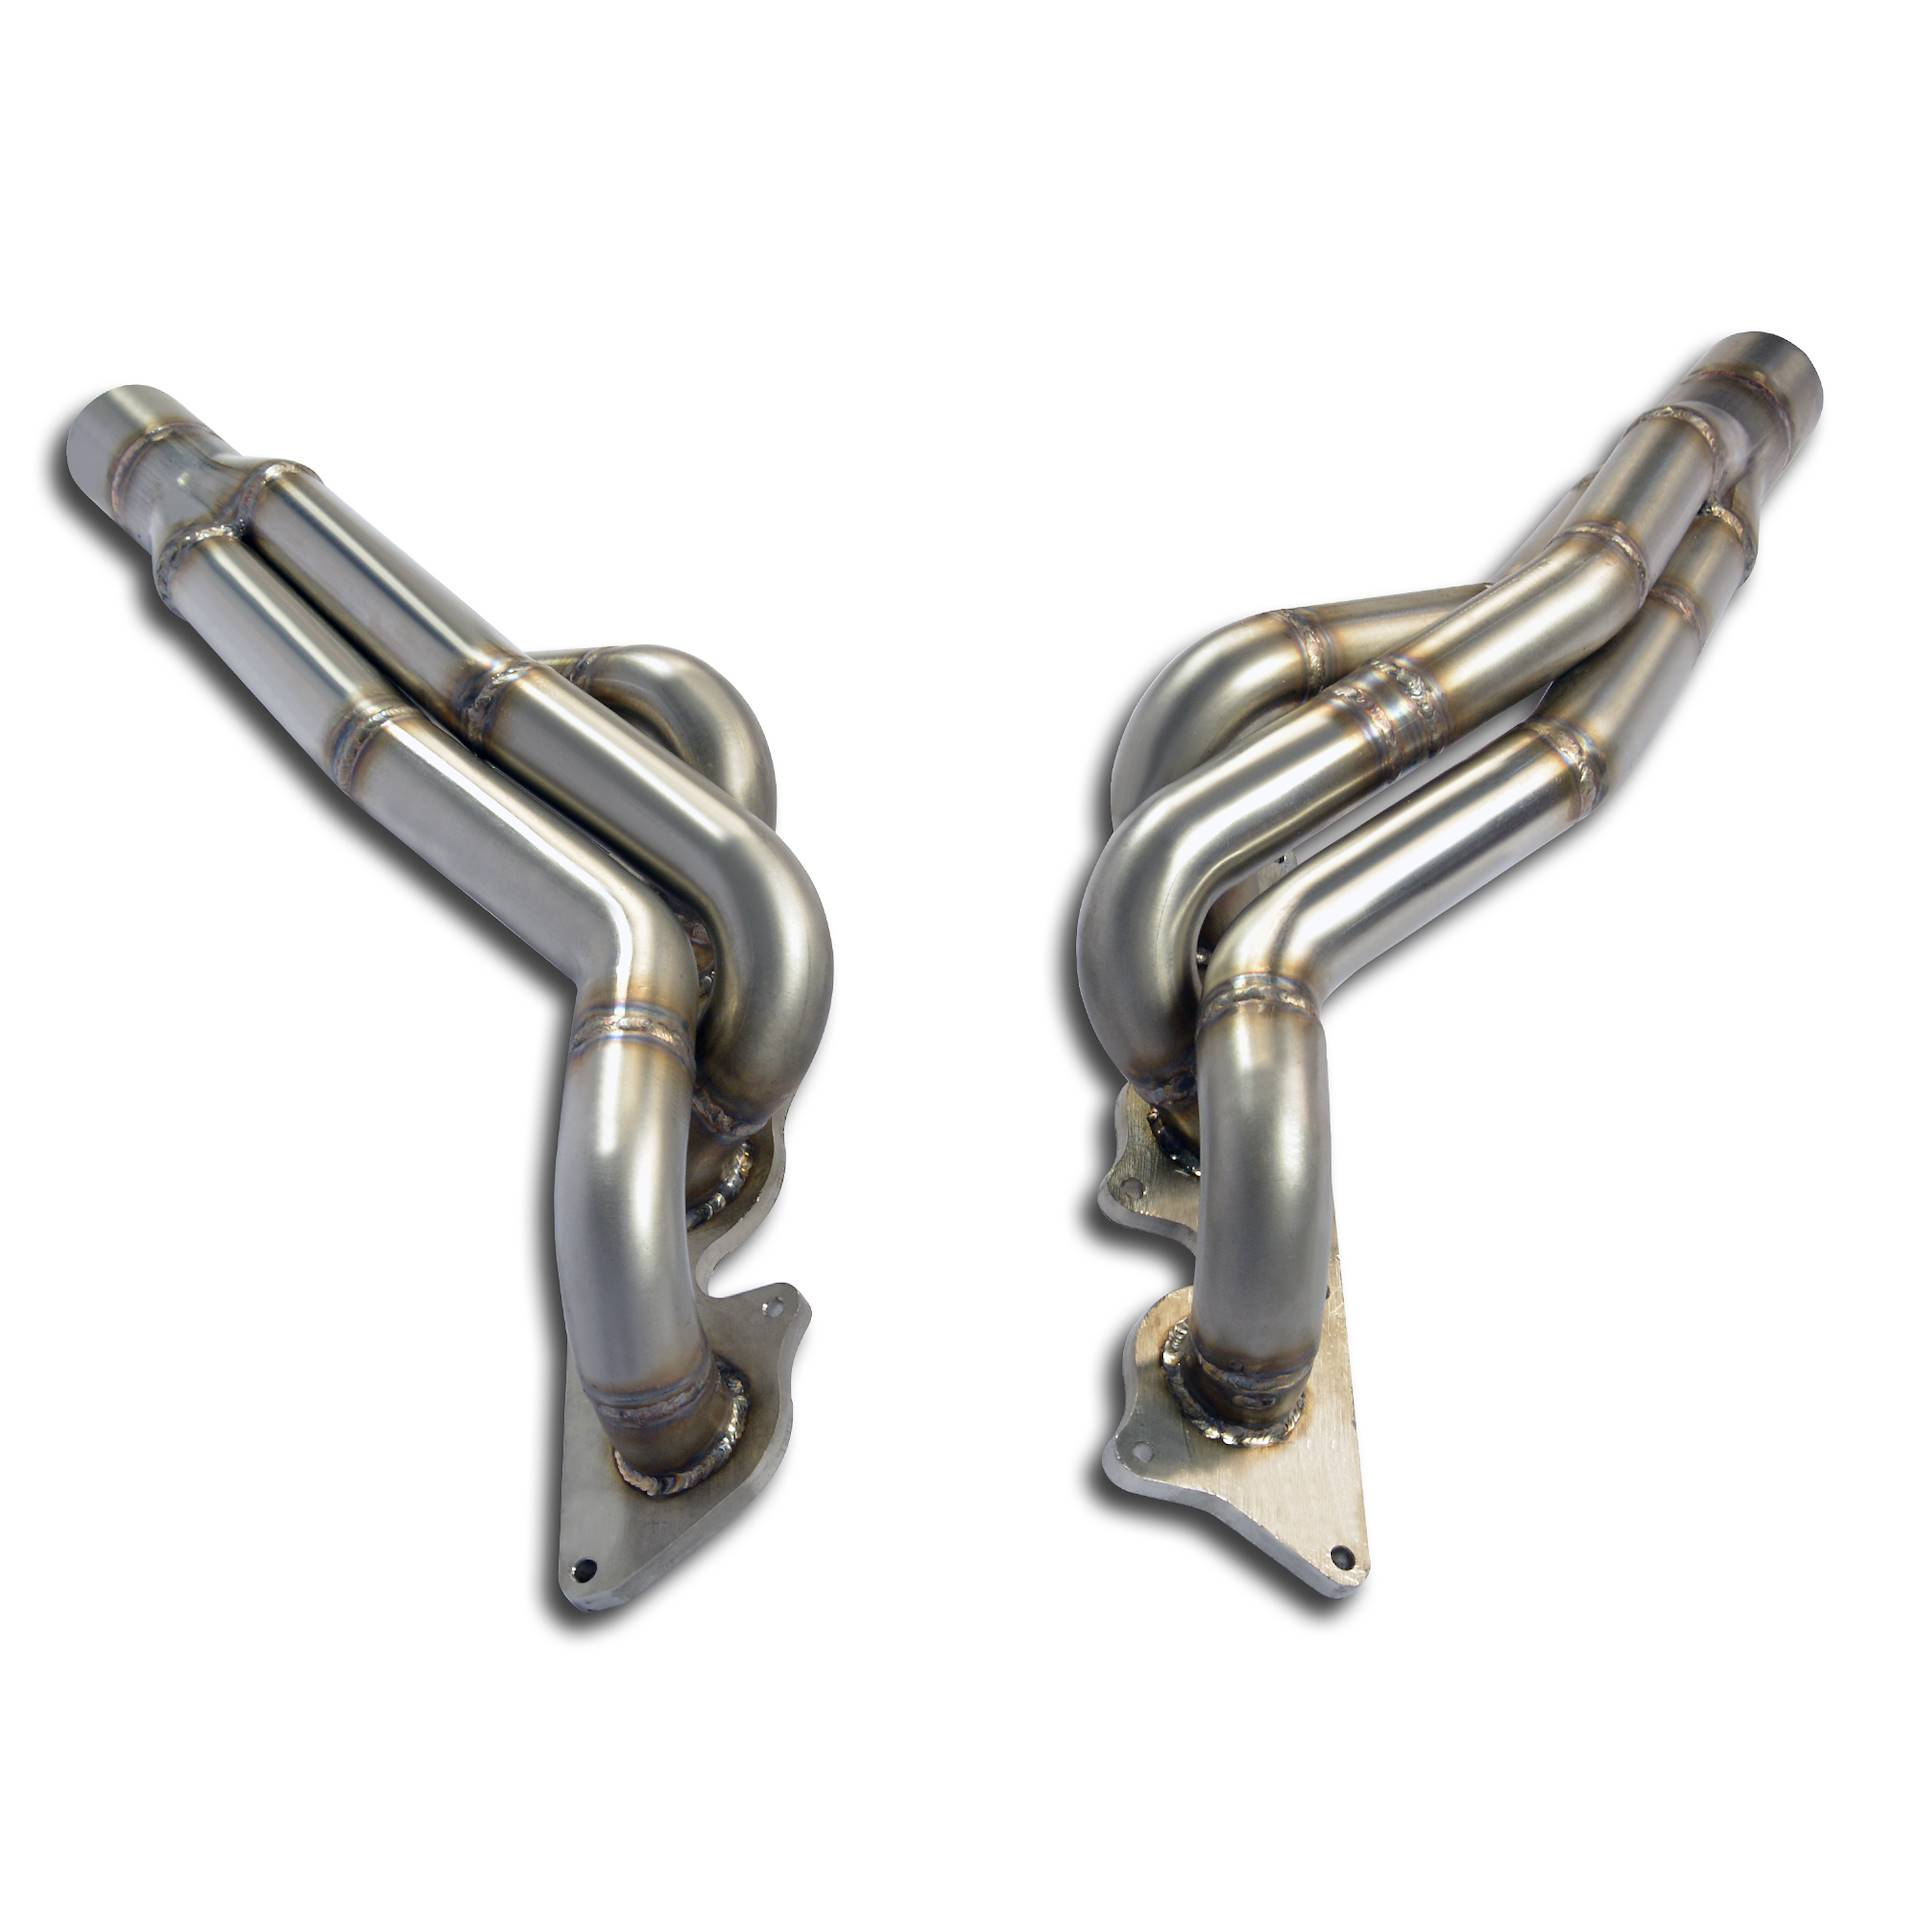 Mercedes - MERCEDES W221 S 350 4-Matic V6 (M272 - 272 Hp) '07 -> '13 Manifold Right - Left, performance exhaust systems